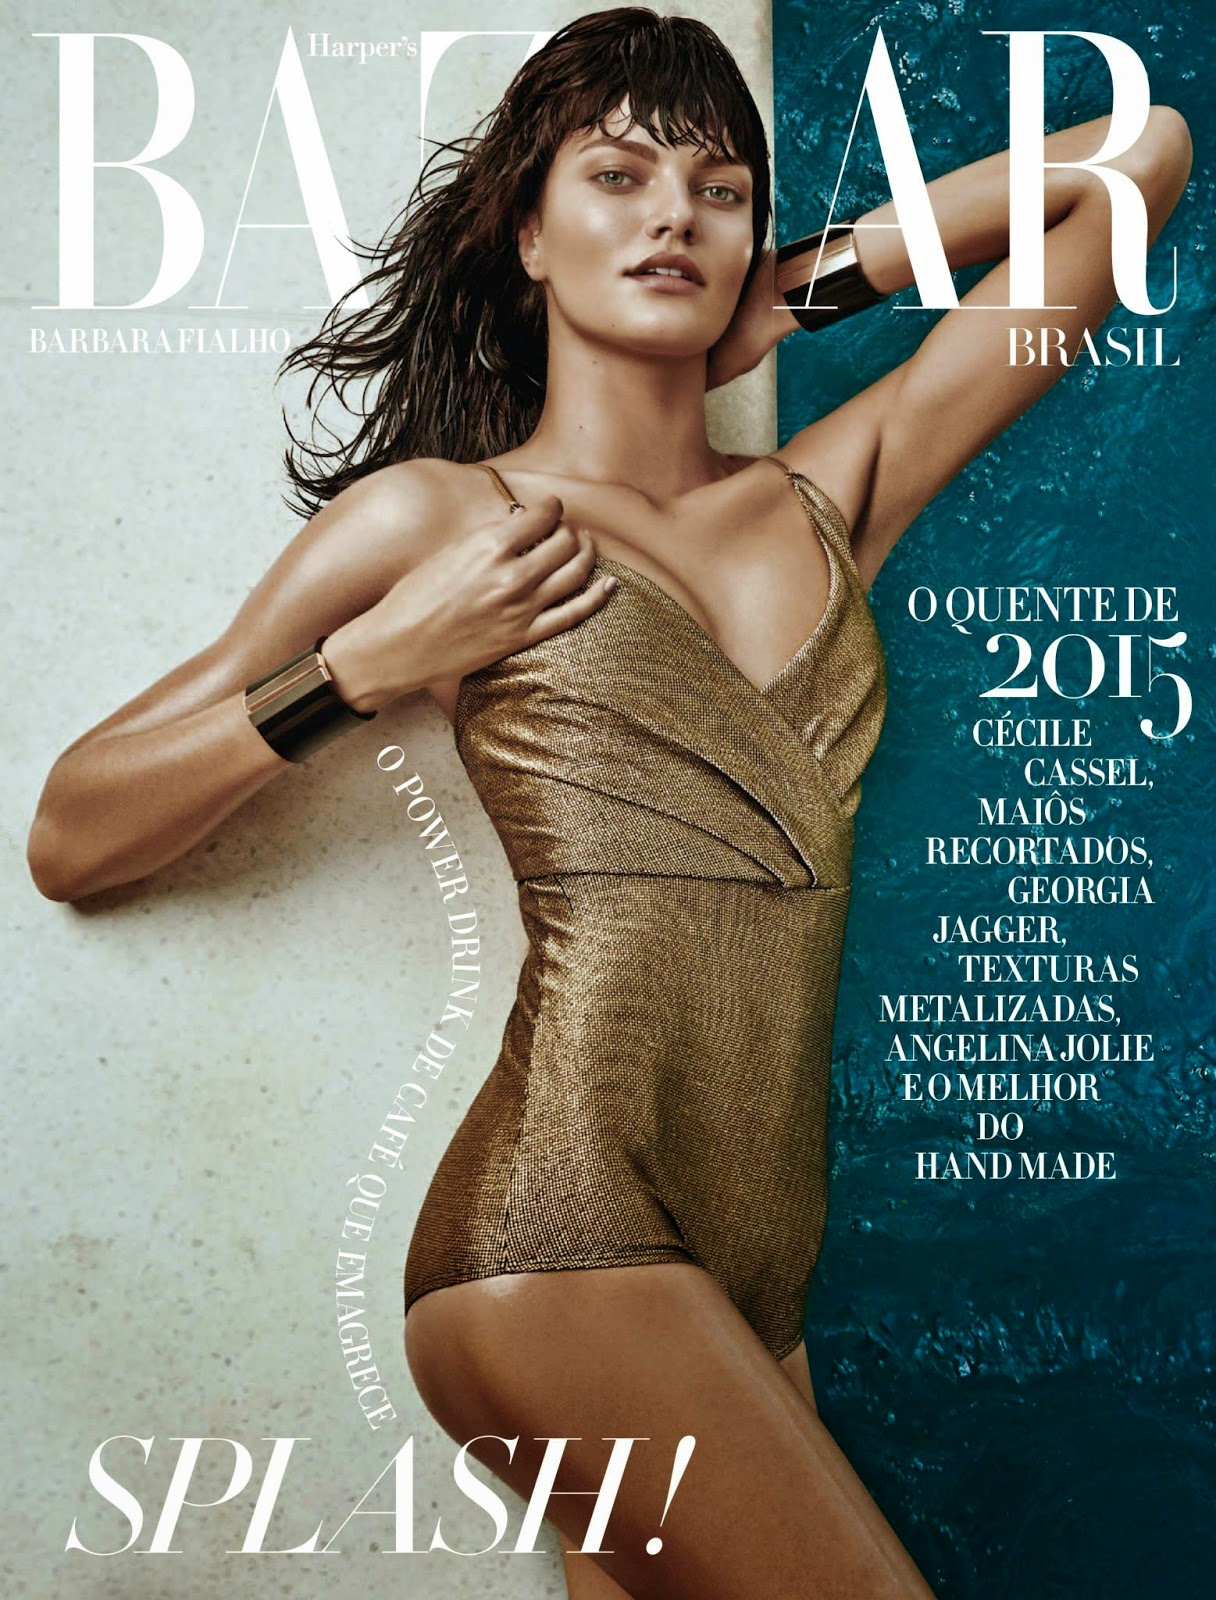 Model: Barbara Fialho by Fabio Bartelt for Harper's Bazaar, Brazil